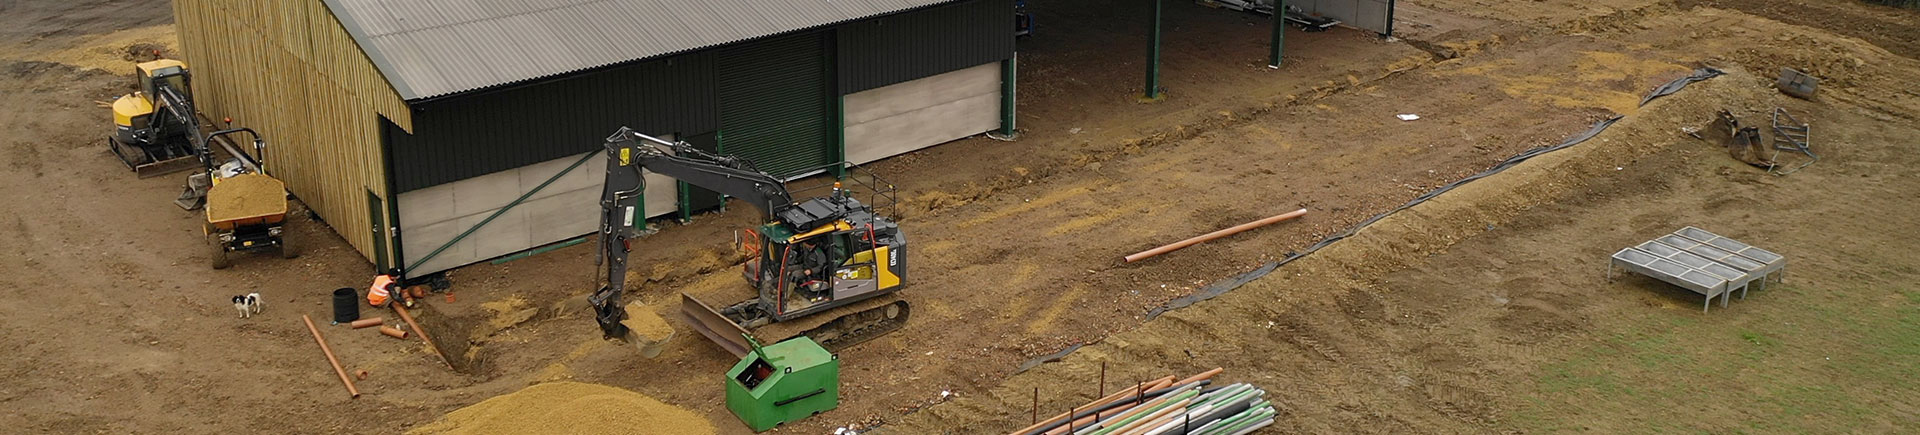 A diversified farm project with a digger working outside which is all insured with Acres Insurance Brokers